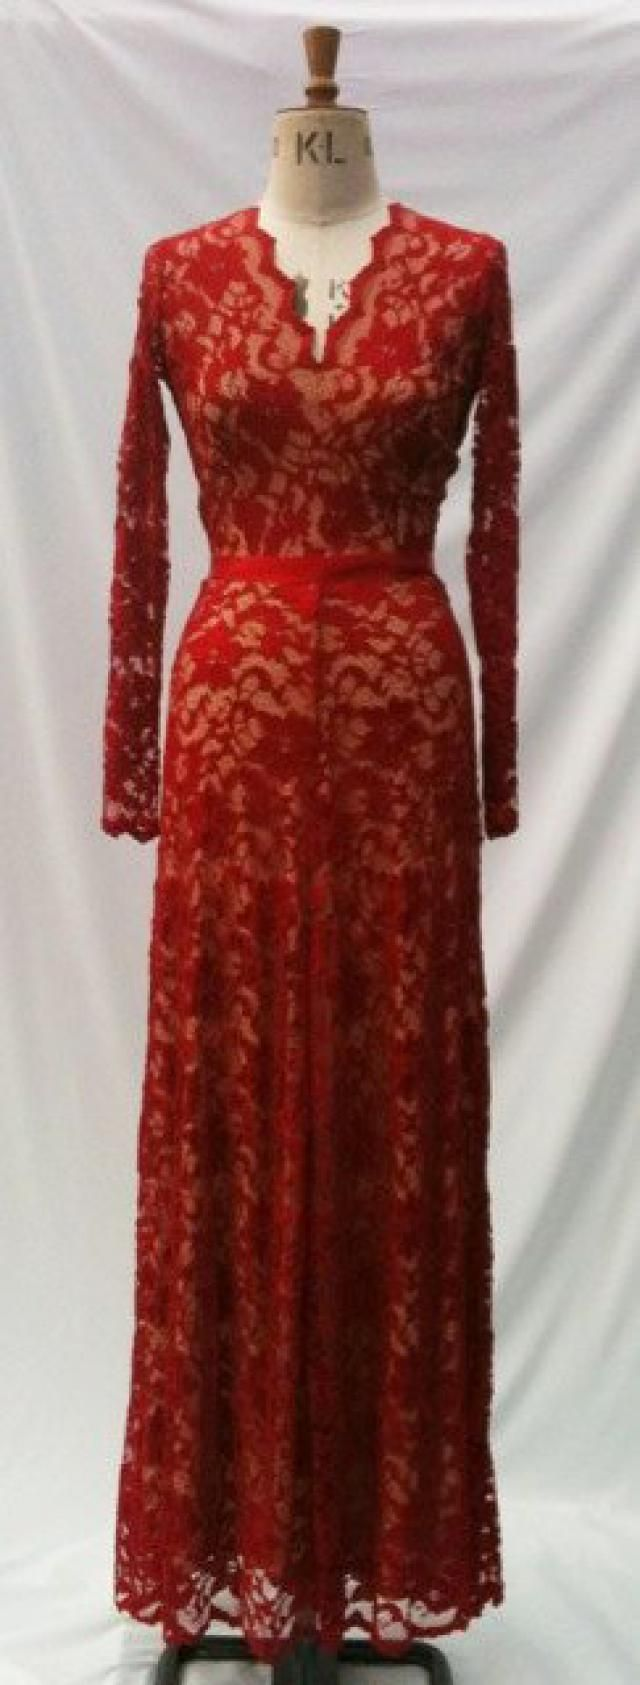 fff25ed730 Baylis   Knight Red Nude LACE Princess Kate Middleton Long Sleeve MAXI  Flared Skirt Low Cut